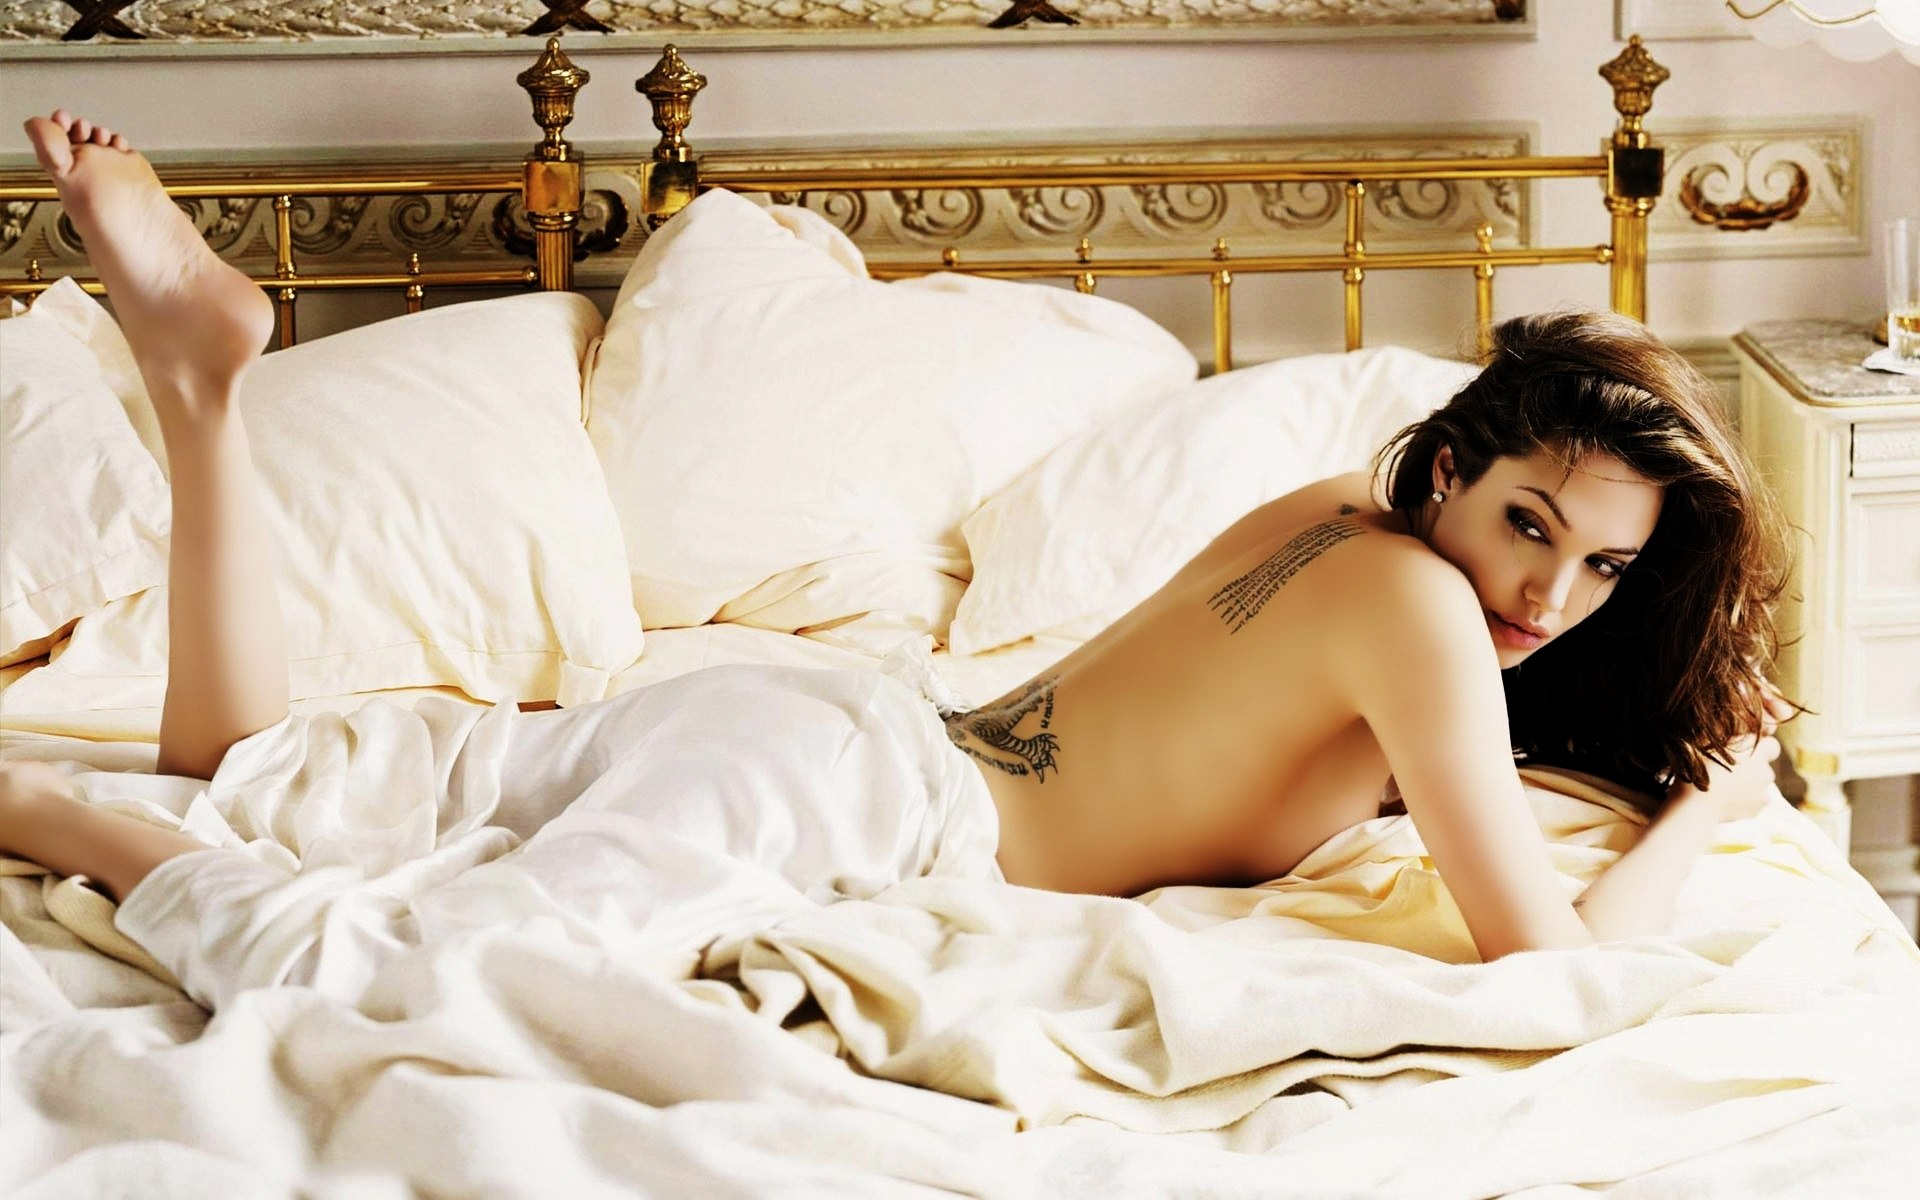 angelina-jolie-hot-nude-photos